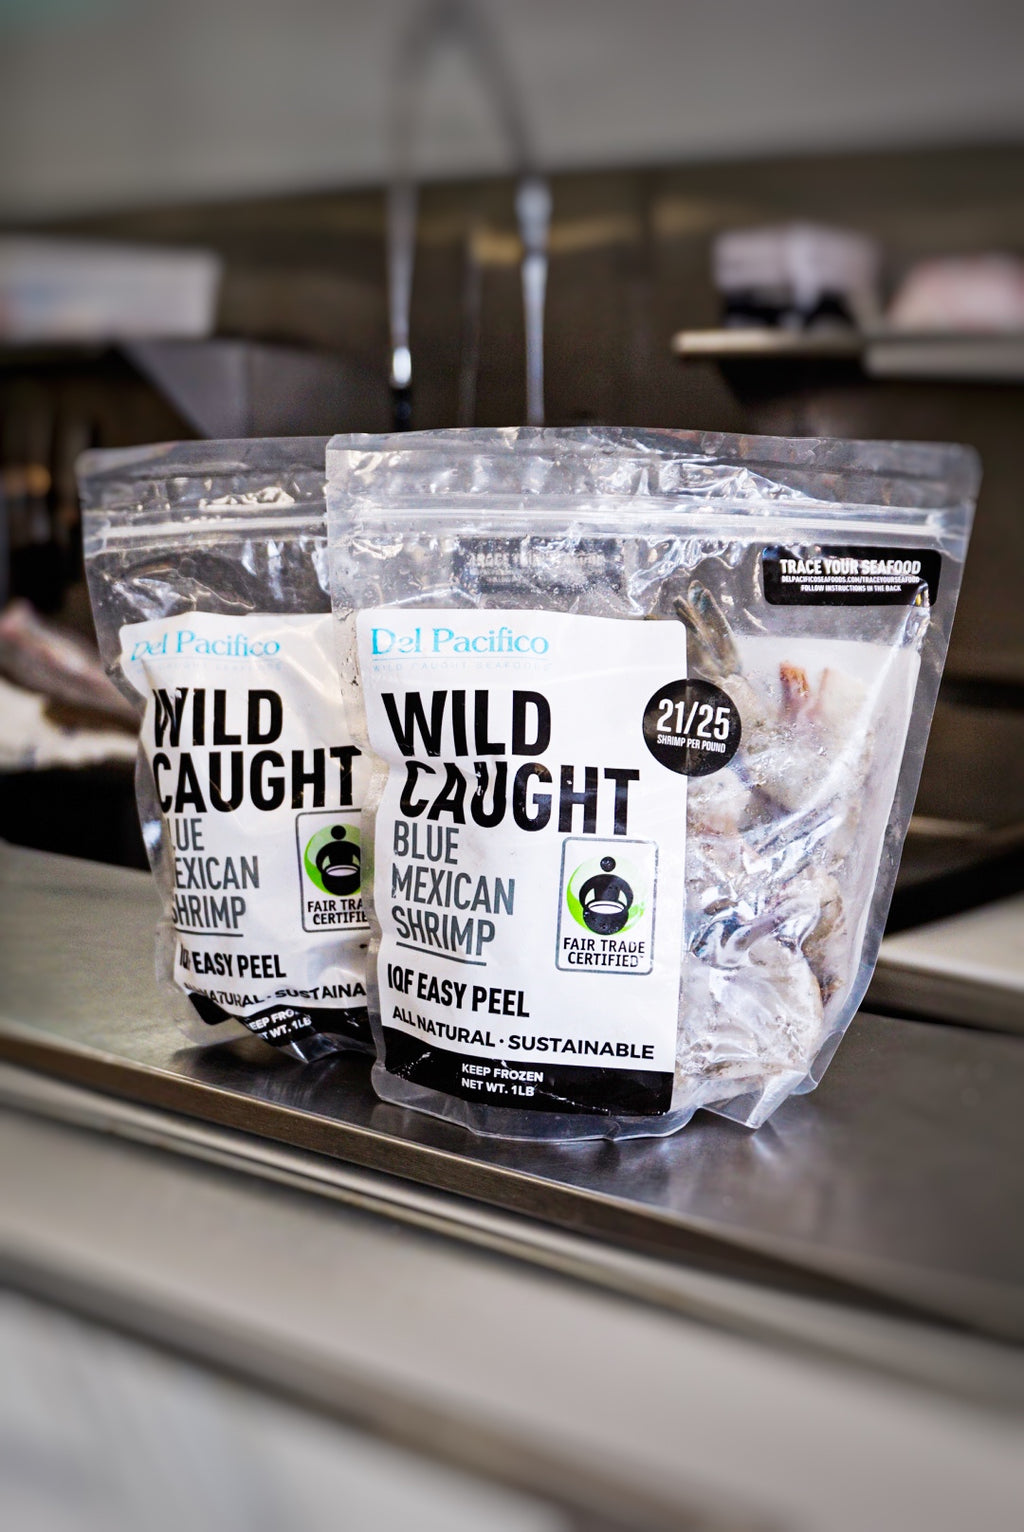 Wild-Caught Blue Mexican Shrimp - Westport (1 lb bag)